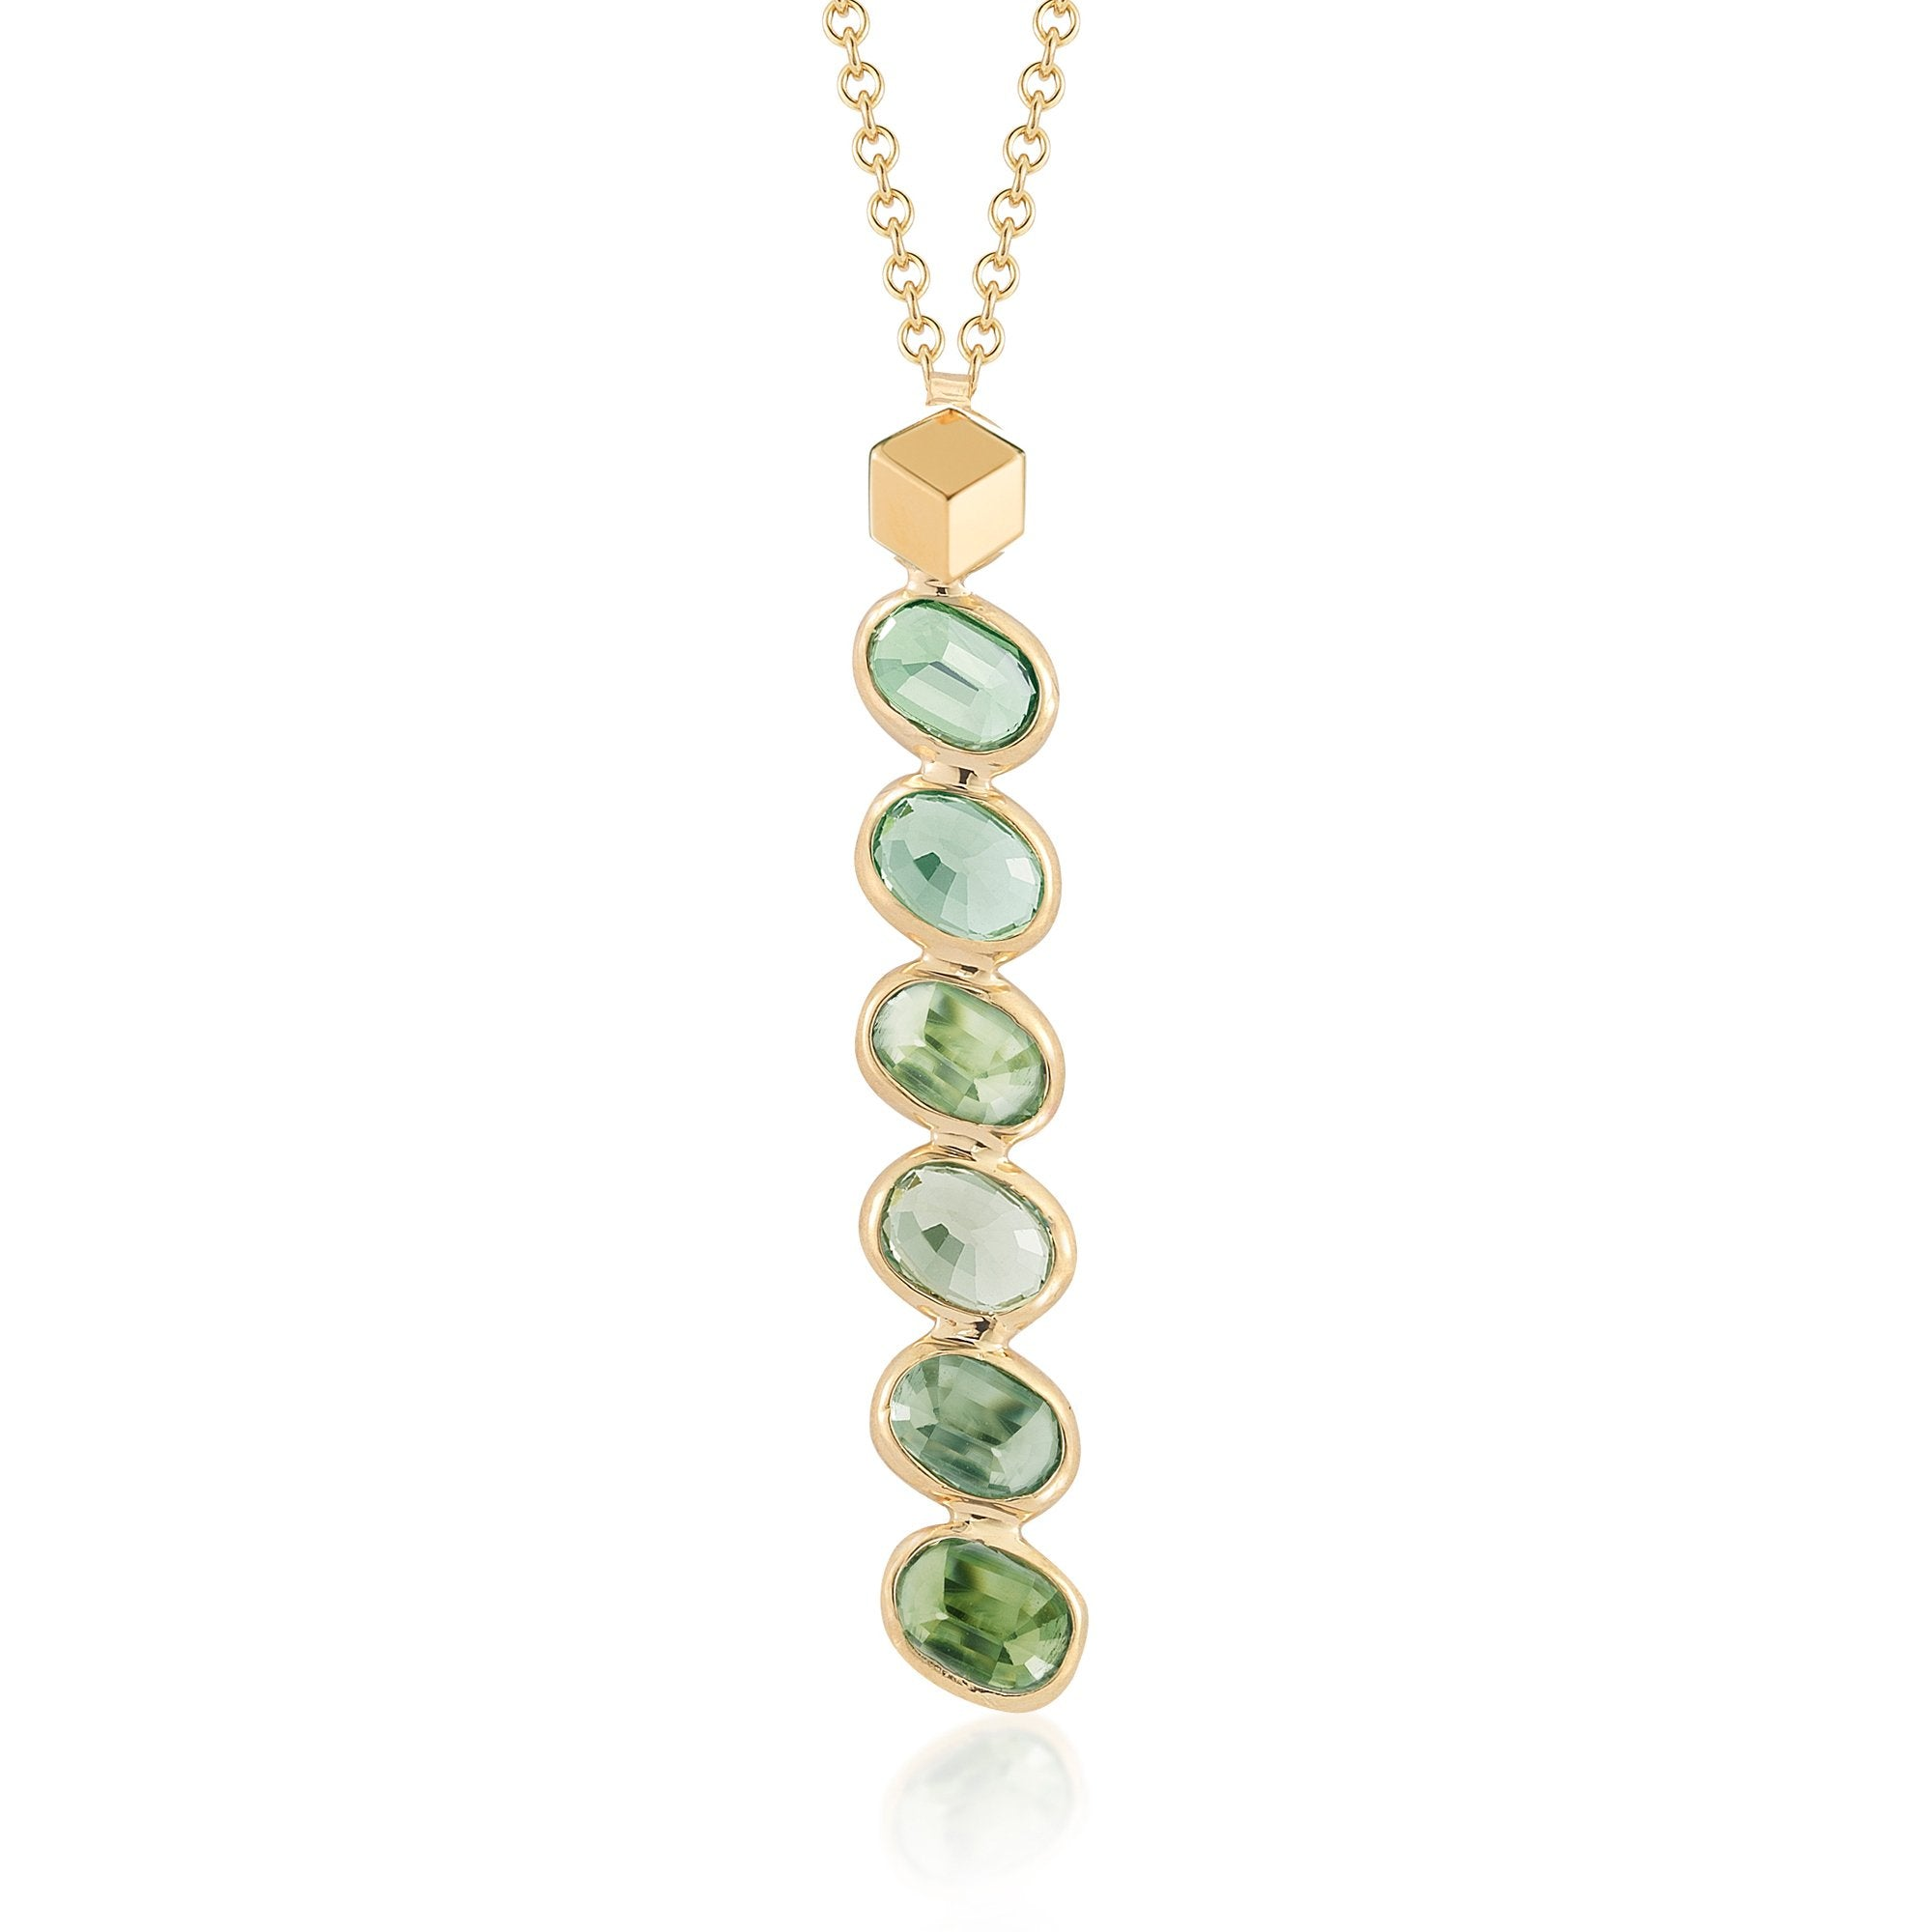 Green sapphire ombre pendant necklace paolo costagli green sapphire ombre pendant necklace paolo costagli 1 aloadofball Image collections